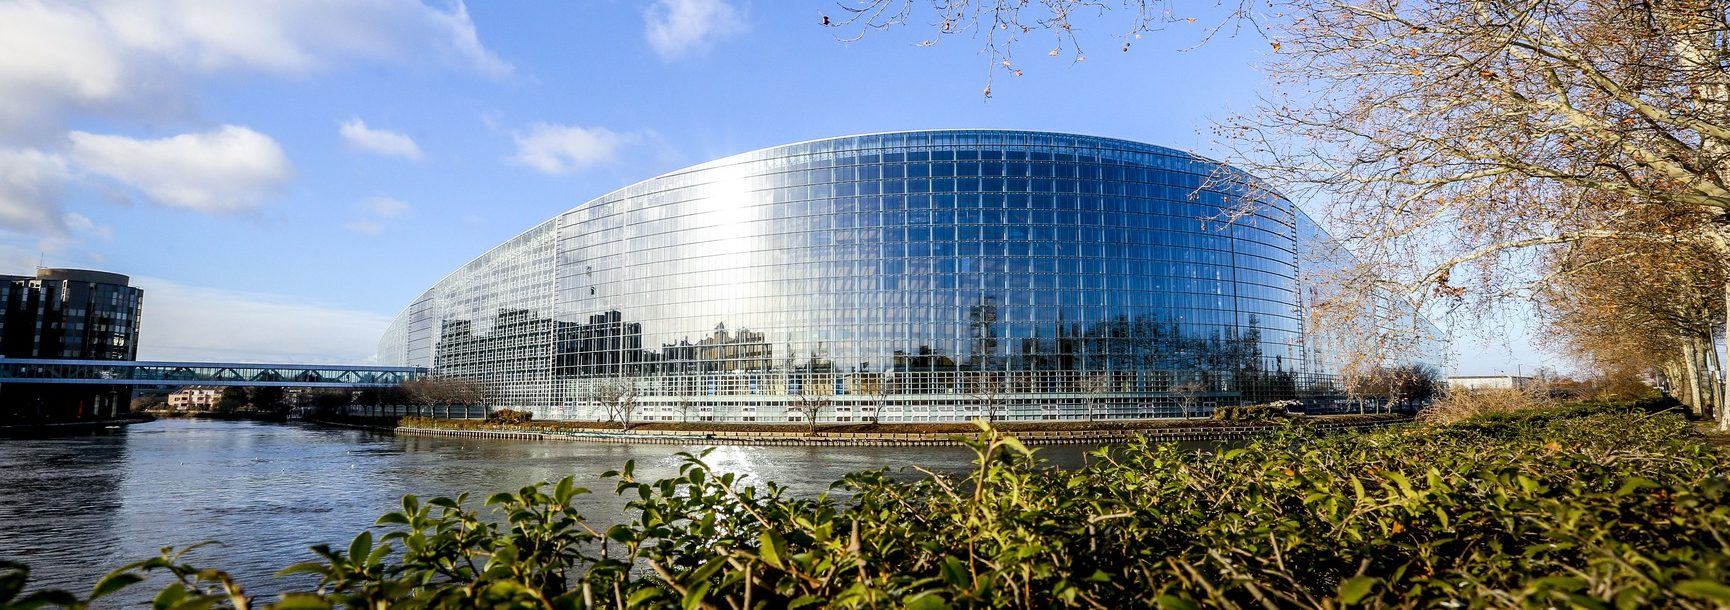 Building of the European parliament in Strasbourg